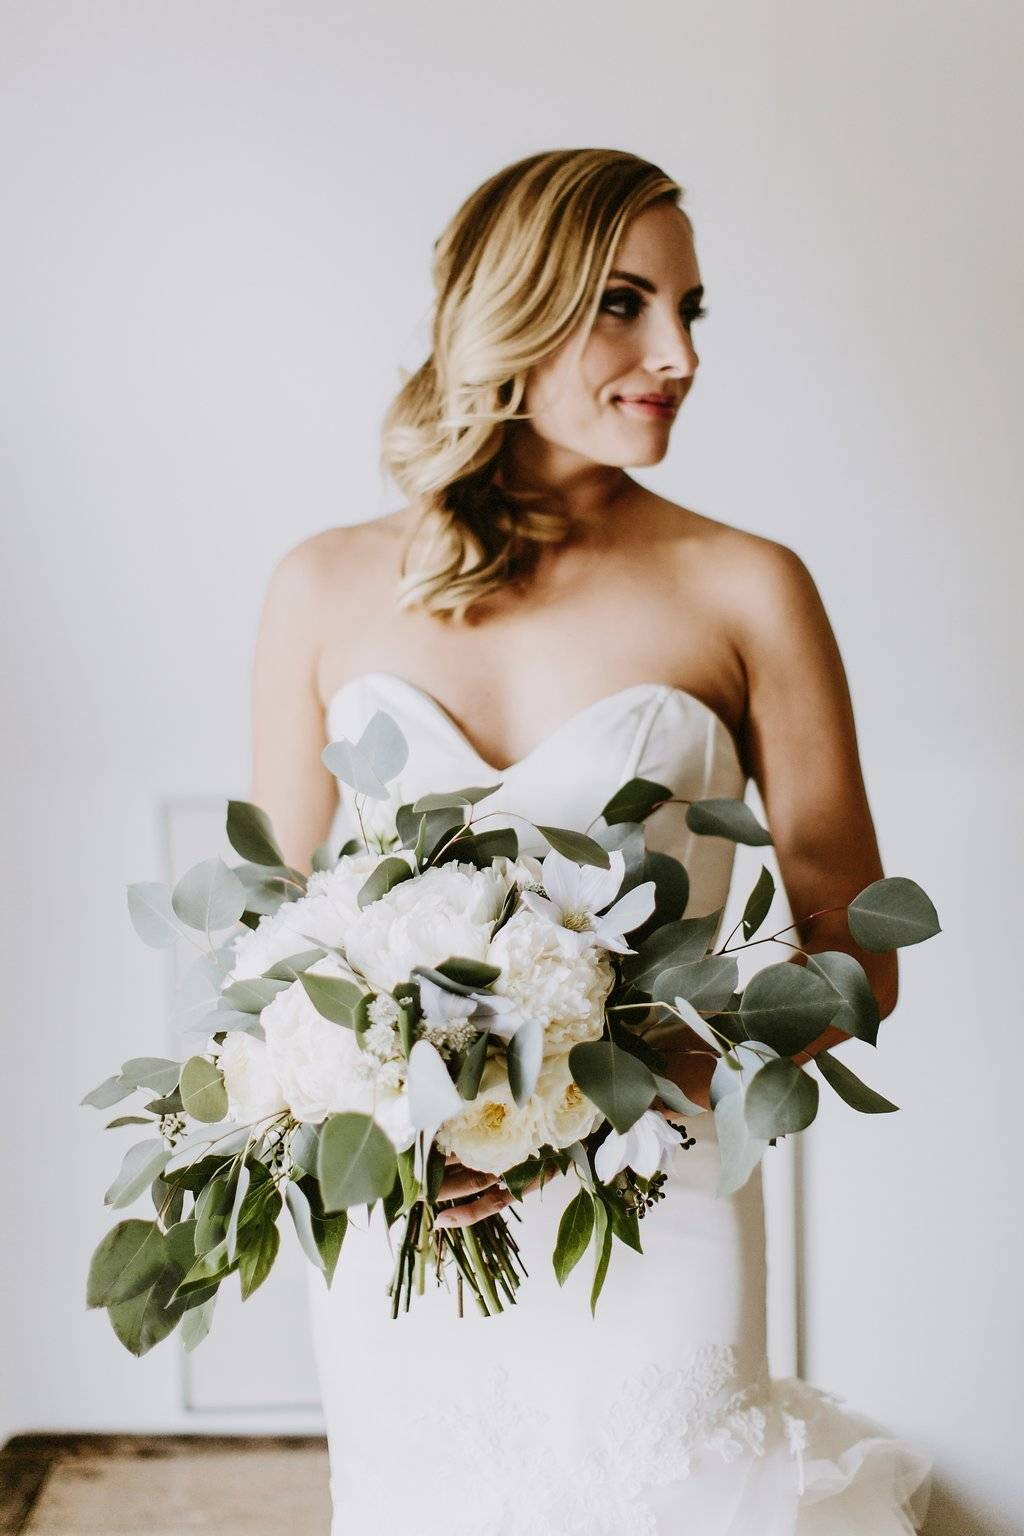 lush wedding, organic wedding, white and green wedding, Los Angeles florist, minimalist luxury wedding, Vave events